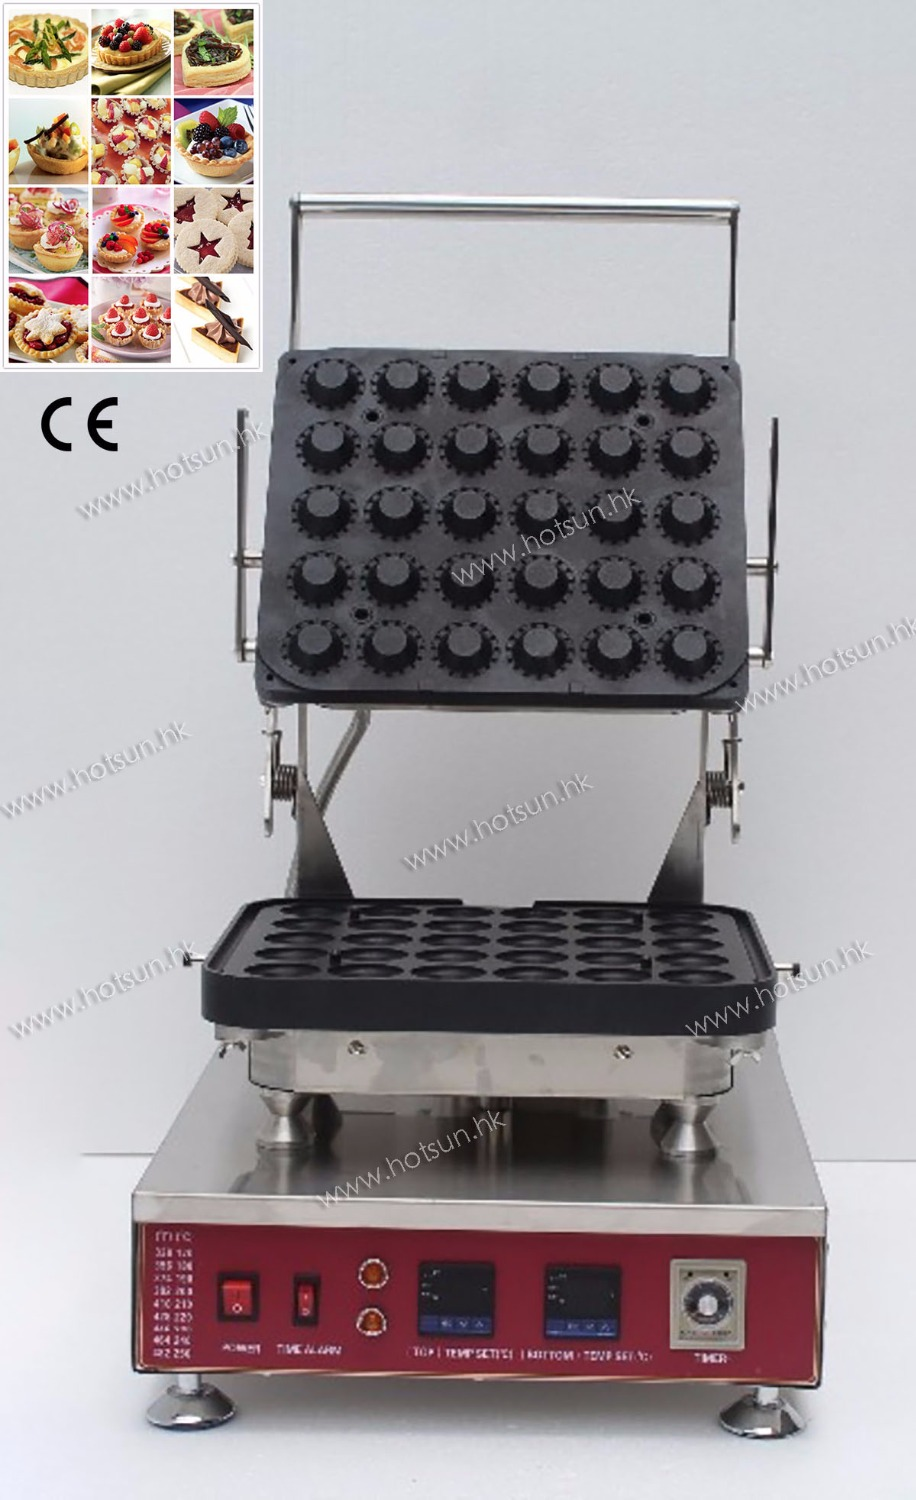 30pcs Professional Non-stick 110V 220V Electric Tarlet Ice Cream Waffl Bowl Maker Machine with Removable Plate